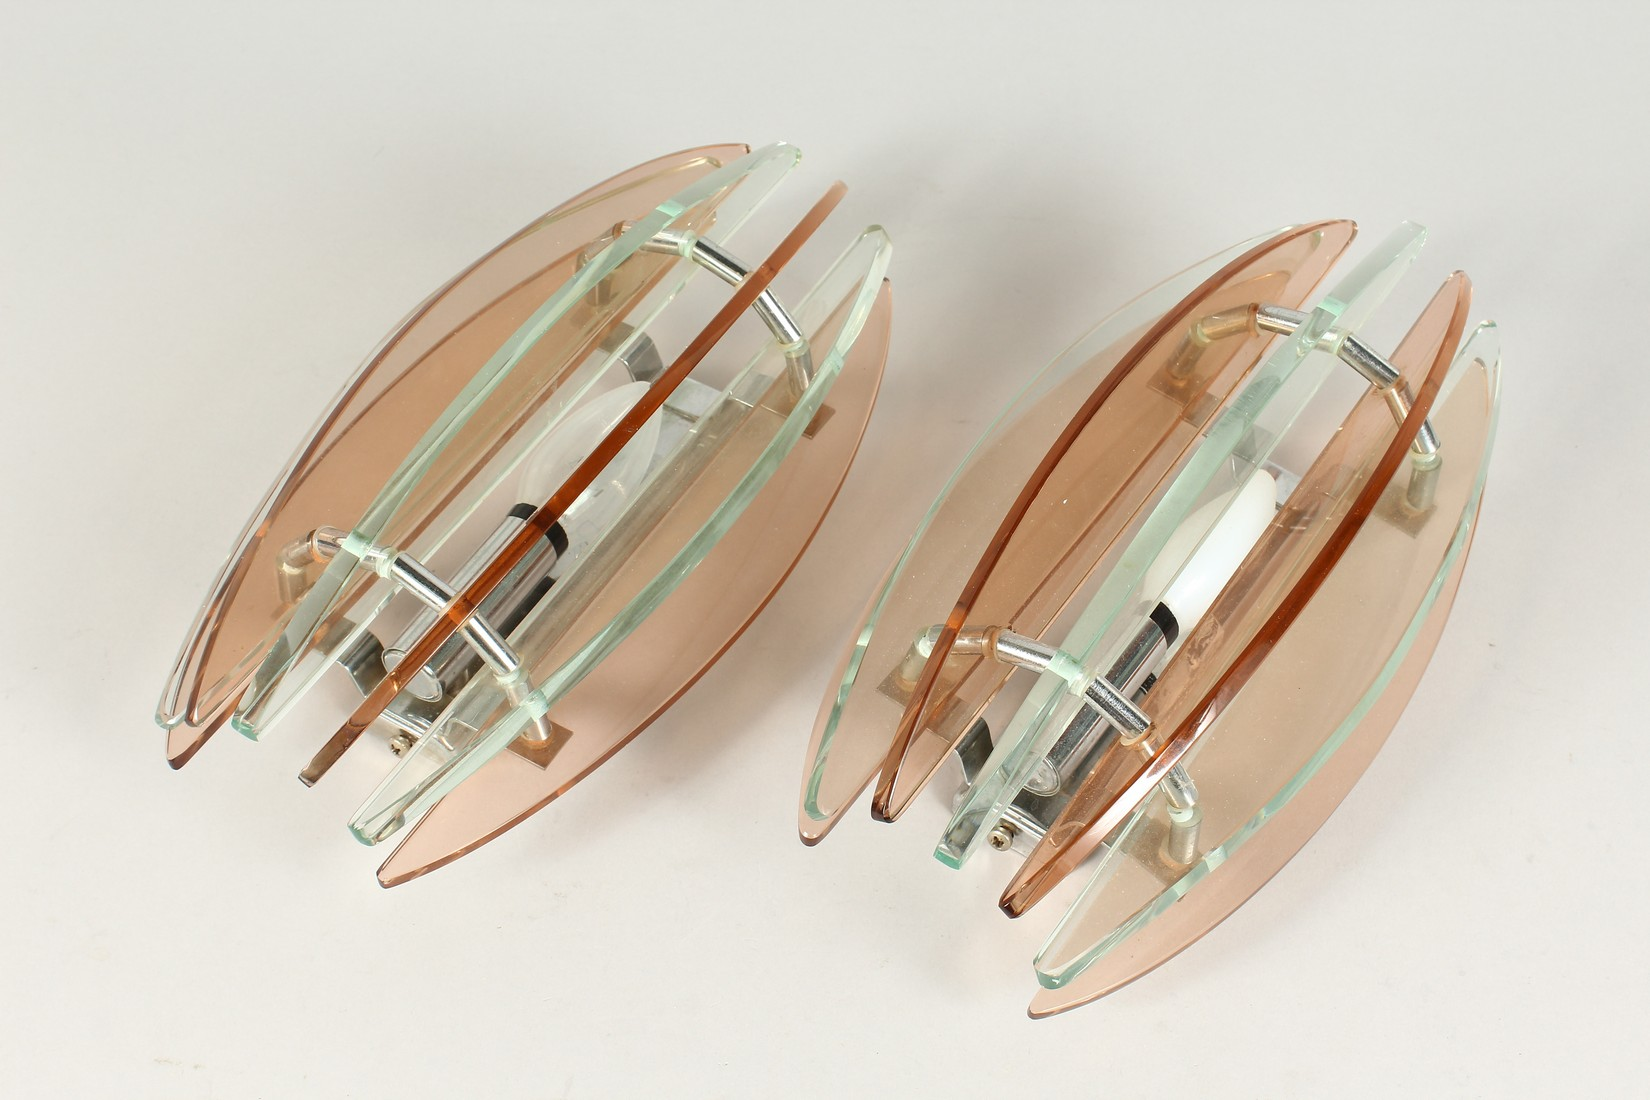 A PAIR OF ART DECO WALL LIGHTS 11.5ins long - Image 2 of 5